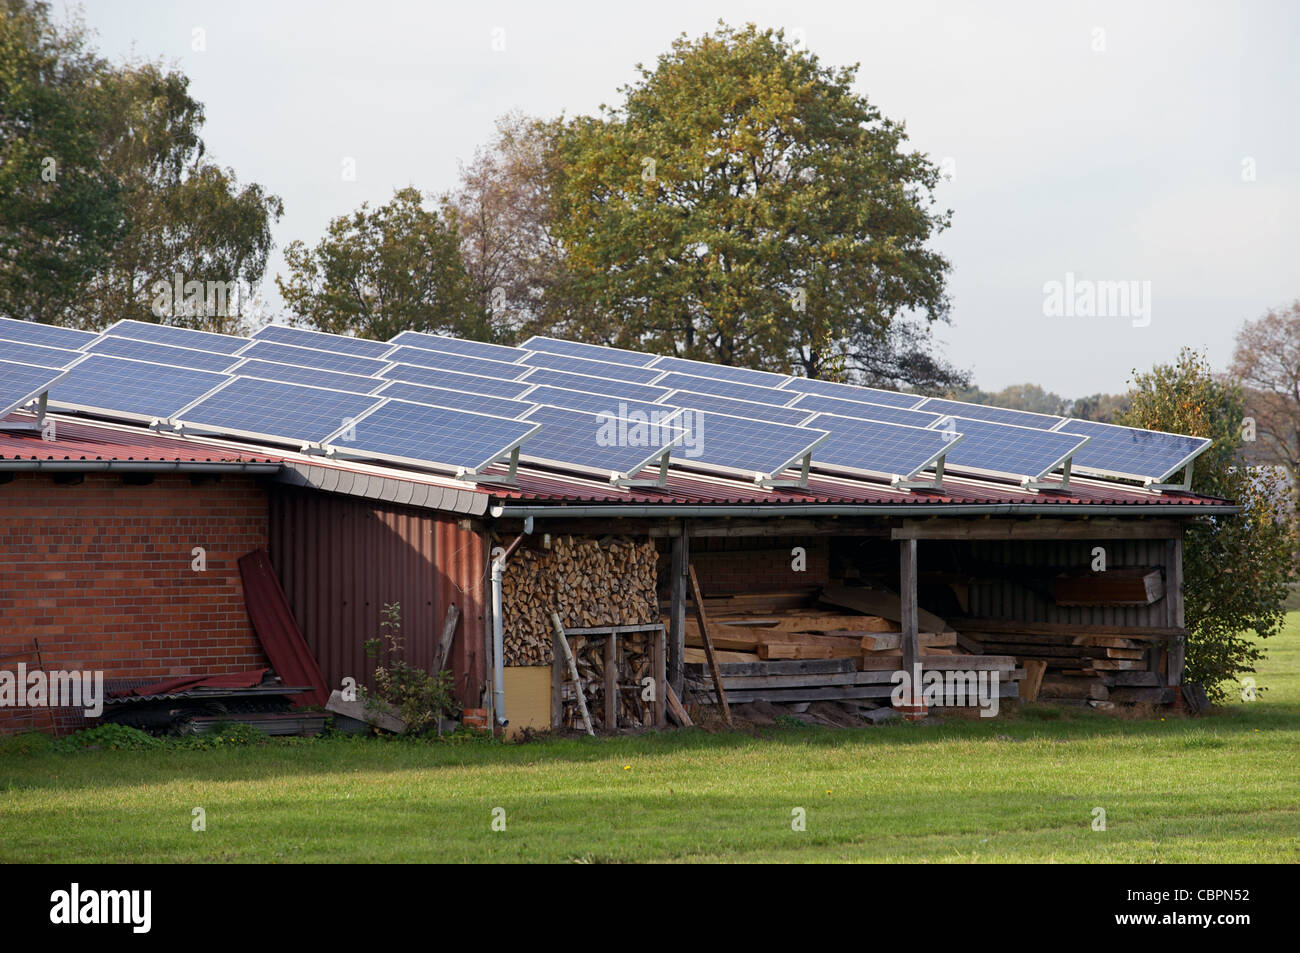 Solar energy panels fitted to farm buildings, Strohen, Lower Saxony, Germany. - Stock Image